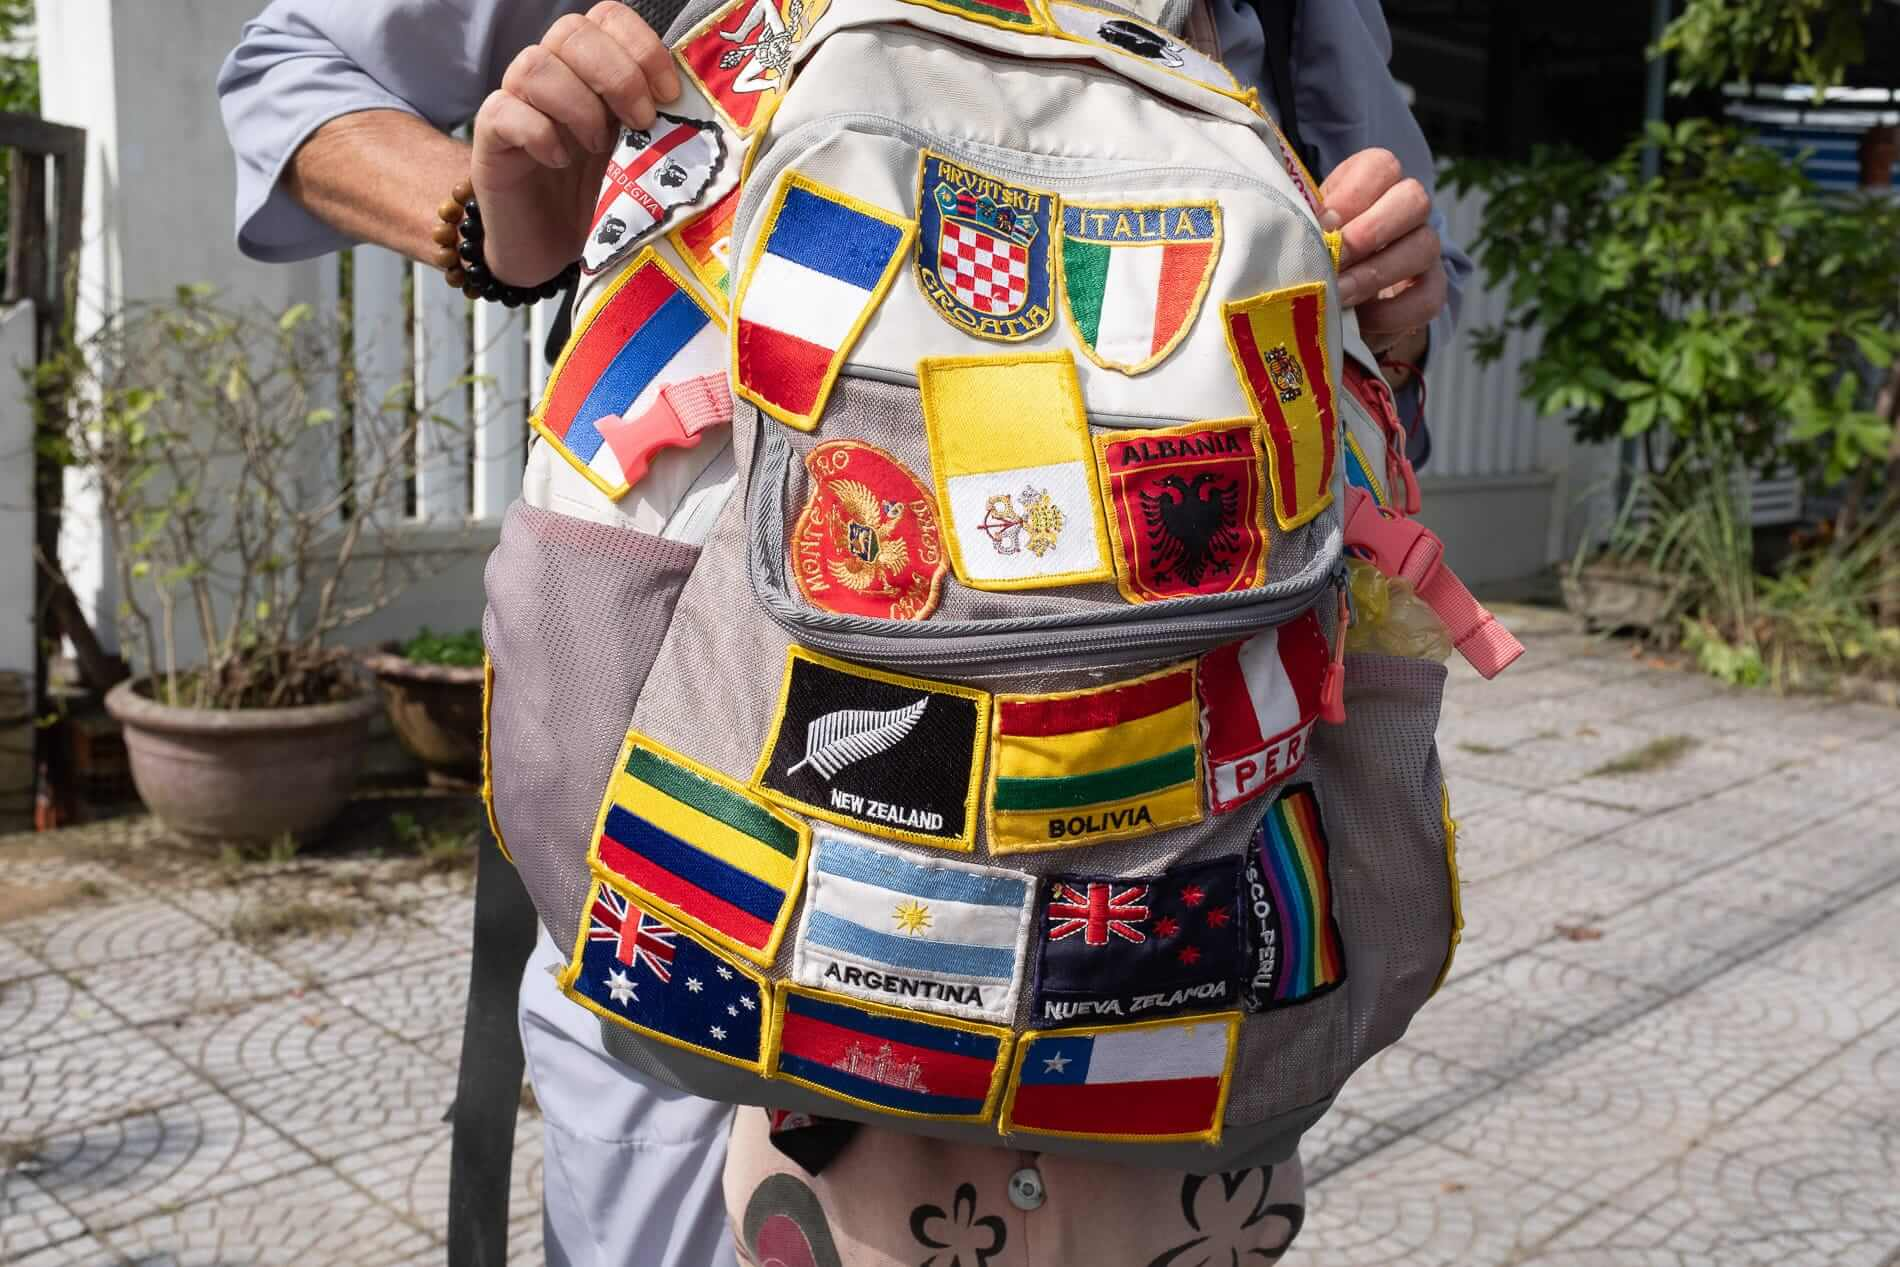 Flags stitched onto a backpackers bag